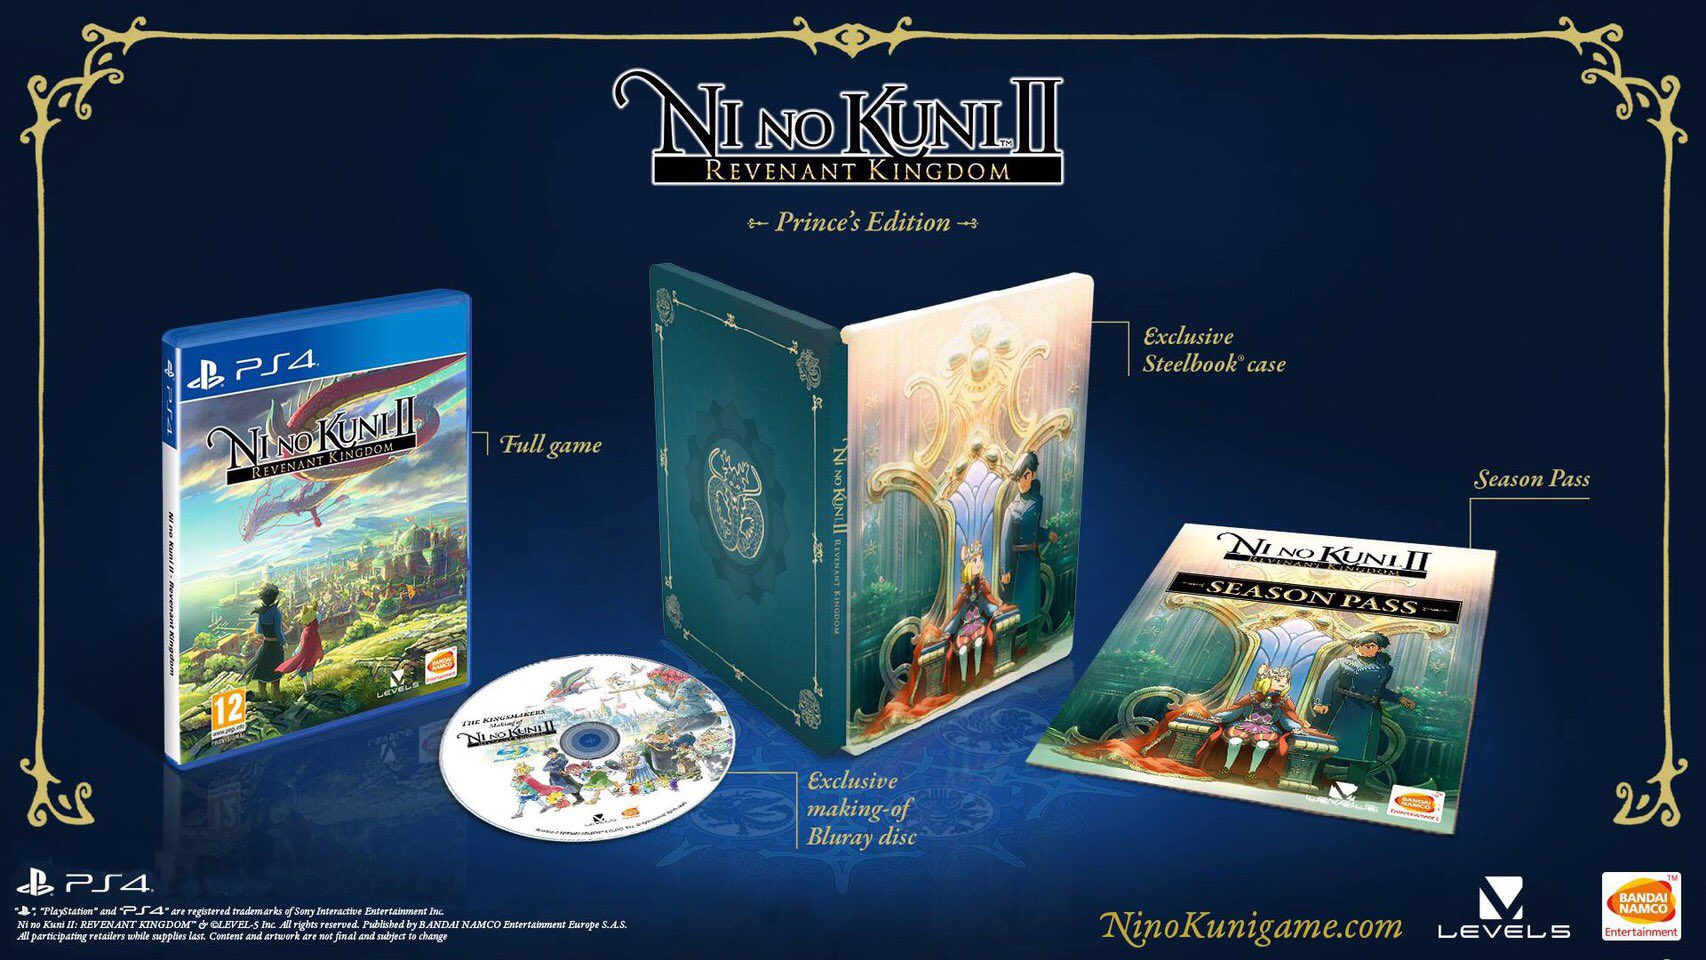 Kingly Collector's Editions Announced for Ni no Kuni II